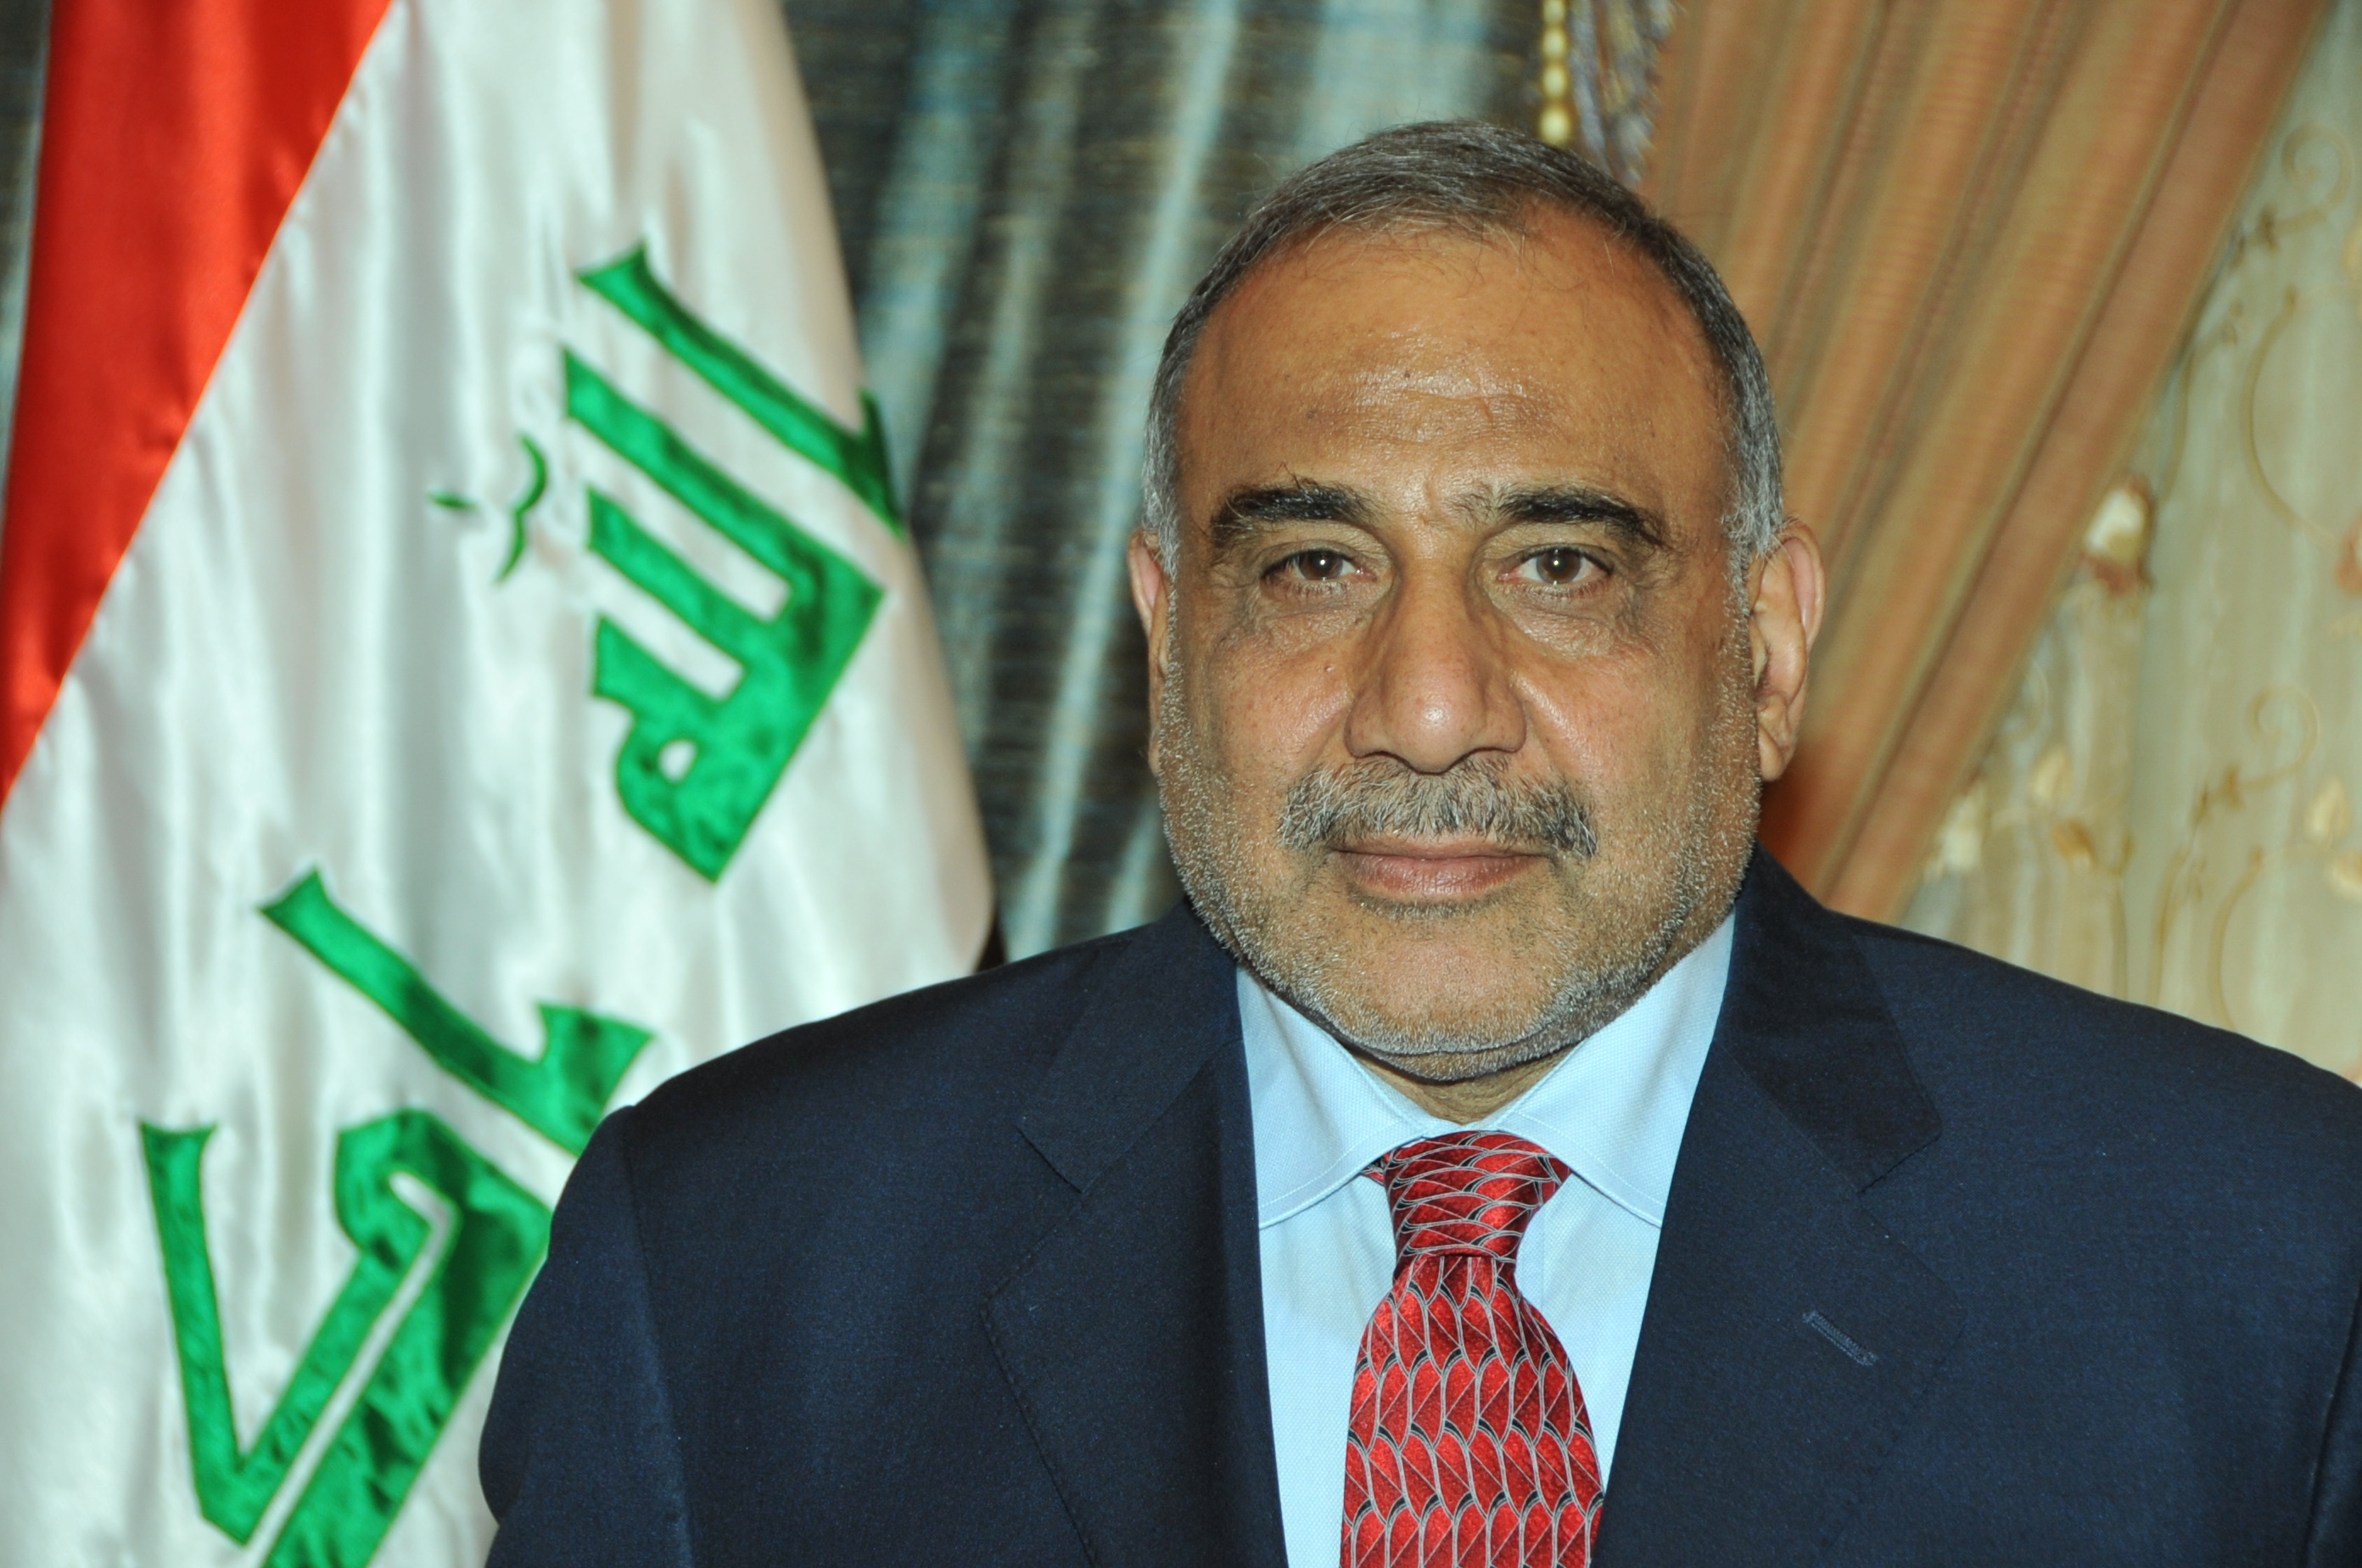 Iraqi Prime Minister announces resignation after violent protests